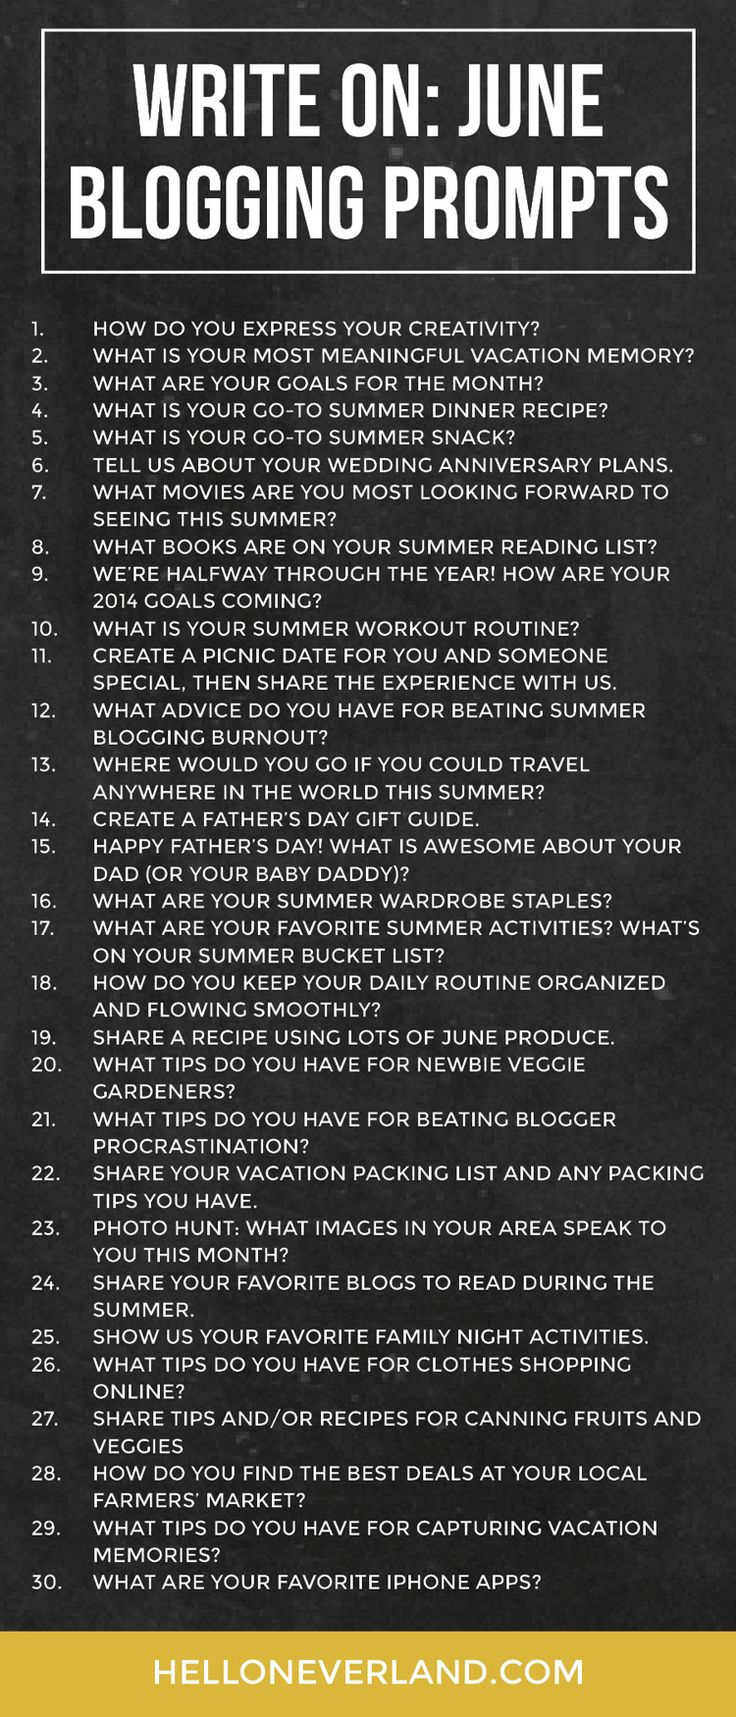 Write on: Blog writing prompts for June - Hello Neverland